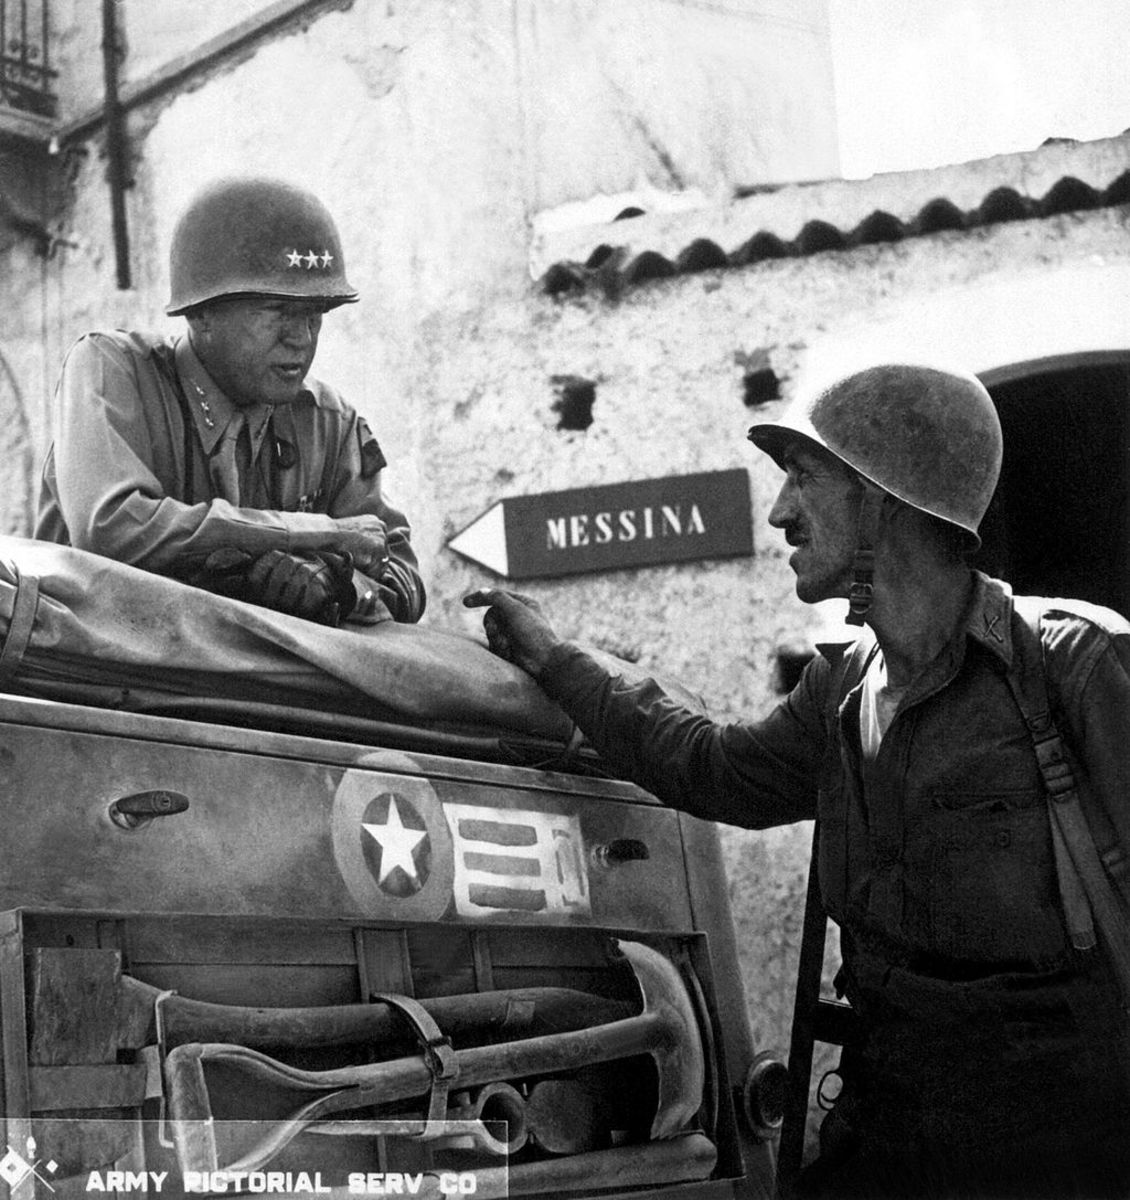 Patton in North Africa in 1942 after Operation Torch.